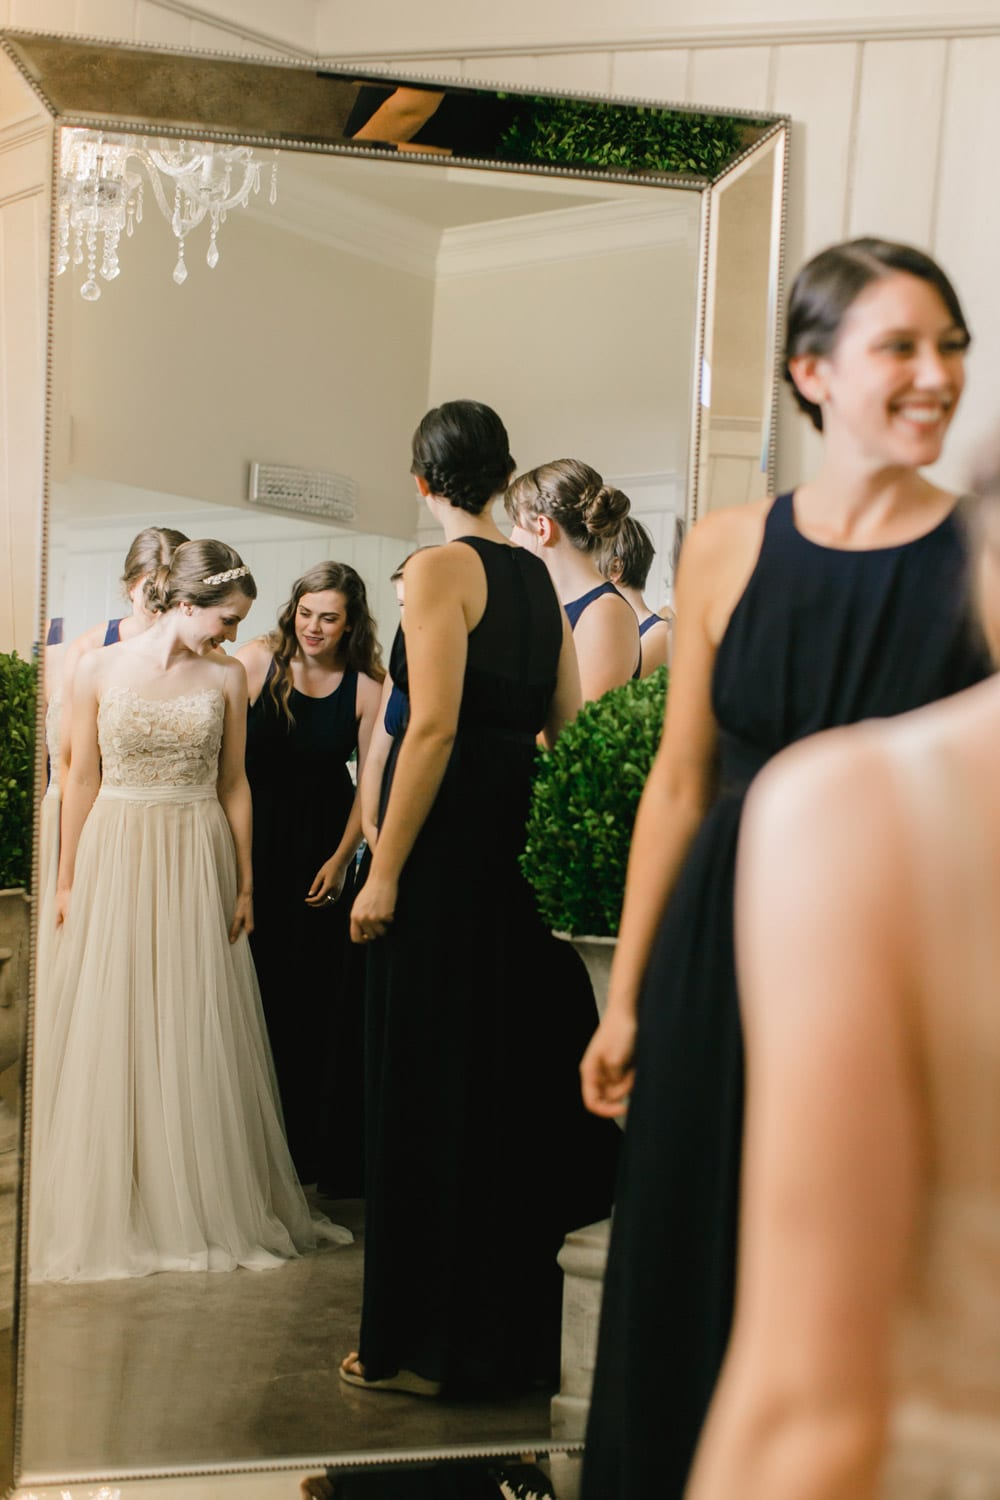 Bride gets ready in the mirror